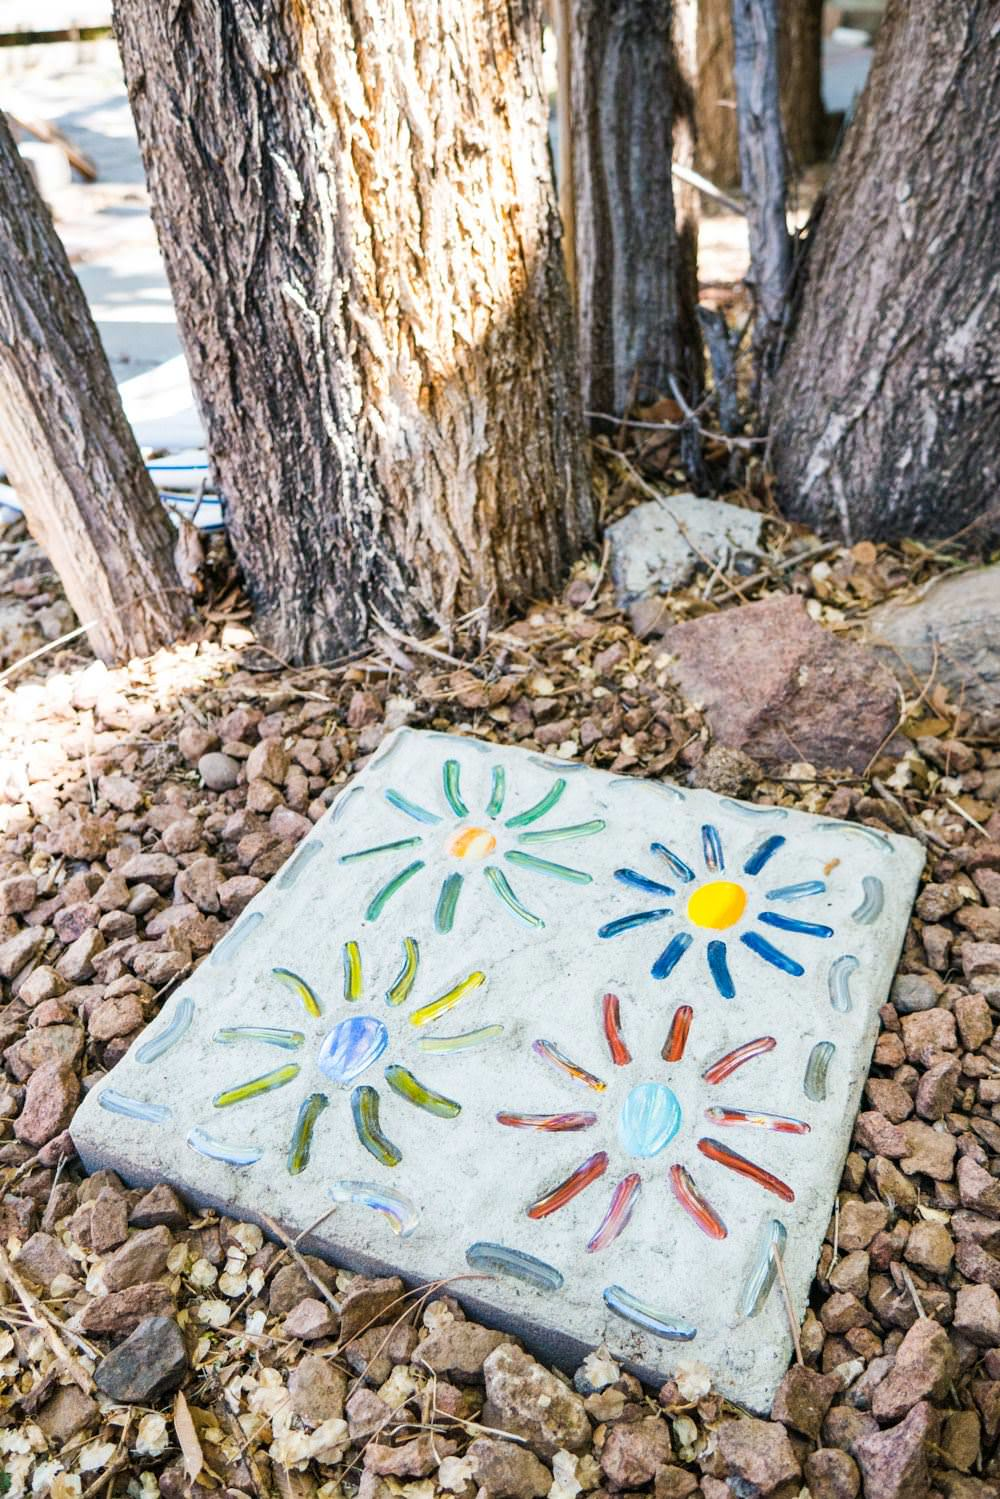 Creative DIY Mosaic Garden Projects | The Garden Glove